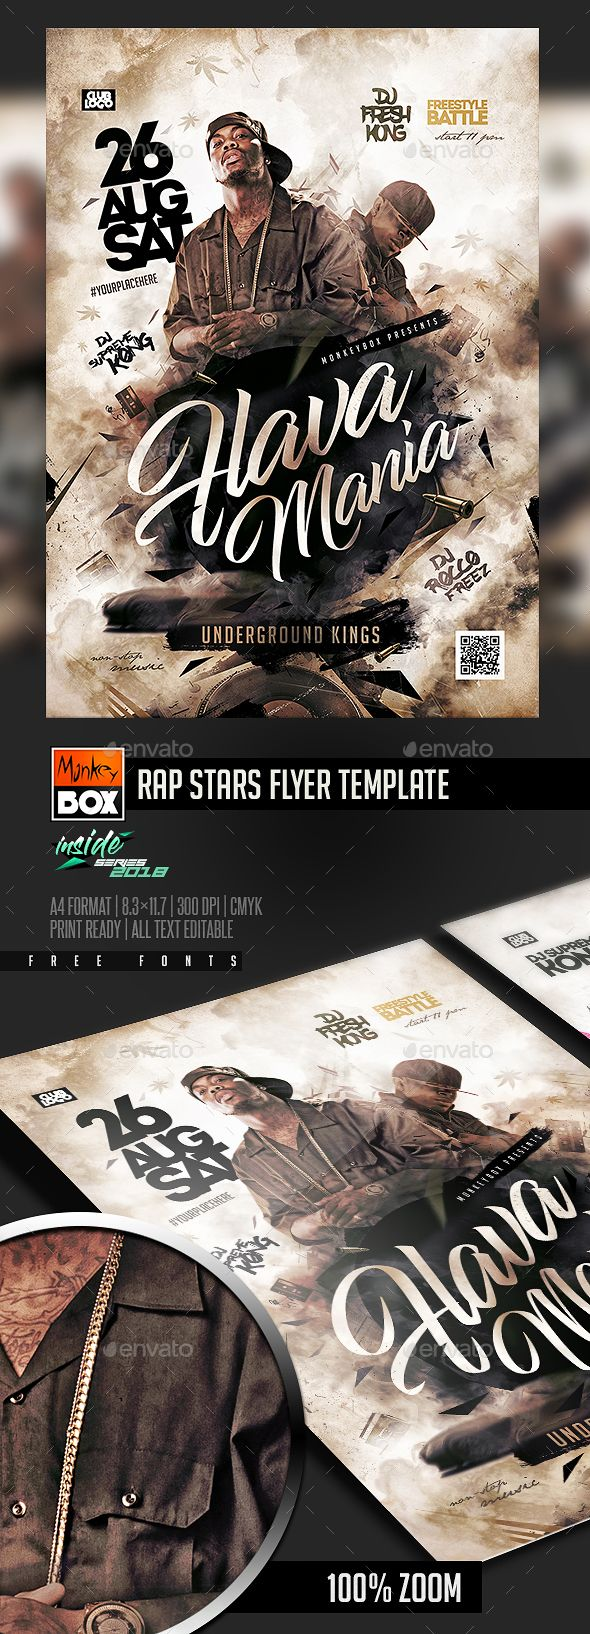 rap stars flyer template psd download flyer templates pinterest